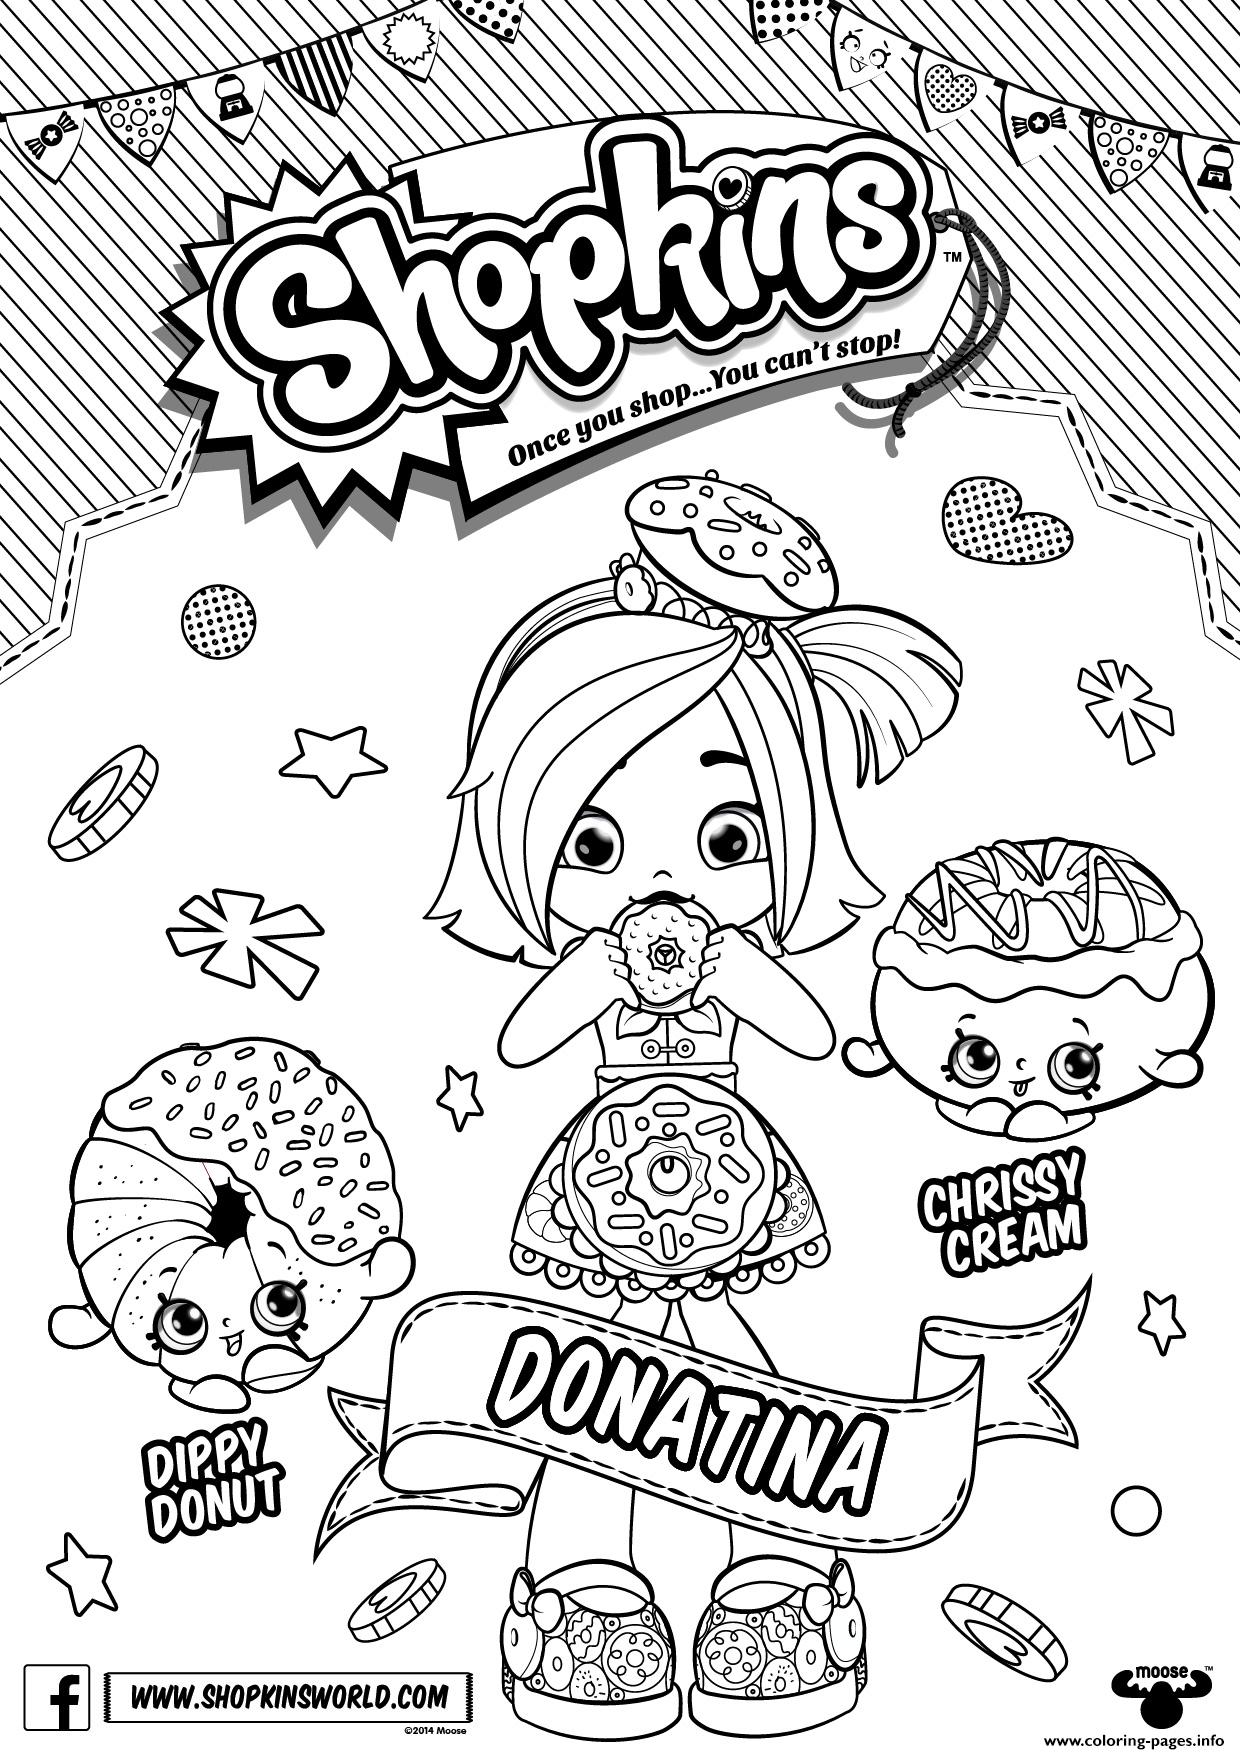 donatina shopkins shoppies coloring pages printable printable coloring pages for girls coloring pages of shopkins you